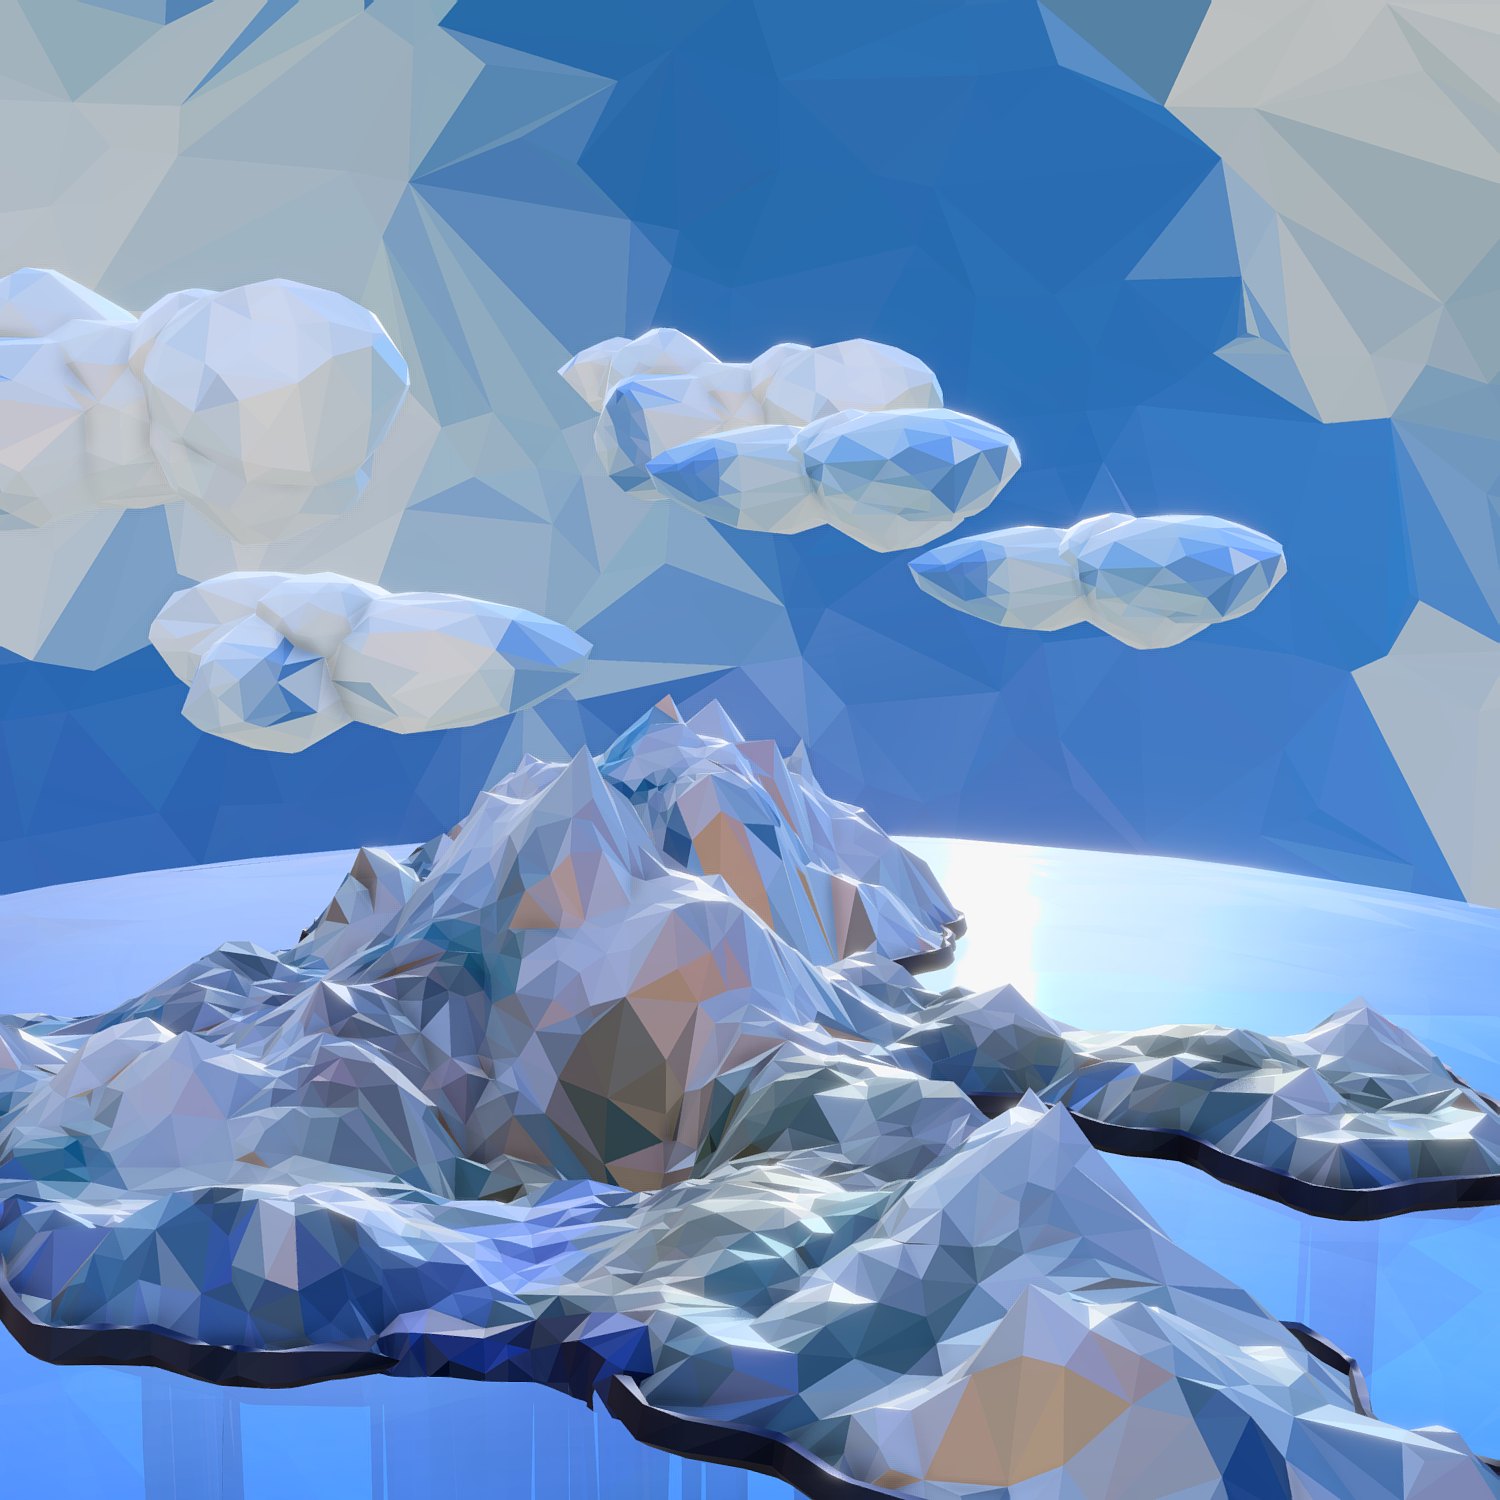 low polygon art snow island mountain waterfall 3d model 3ds max fbx ma mb obj 269715